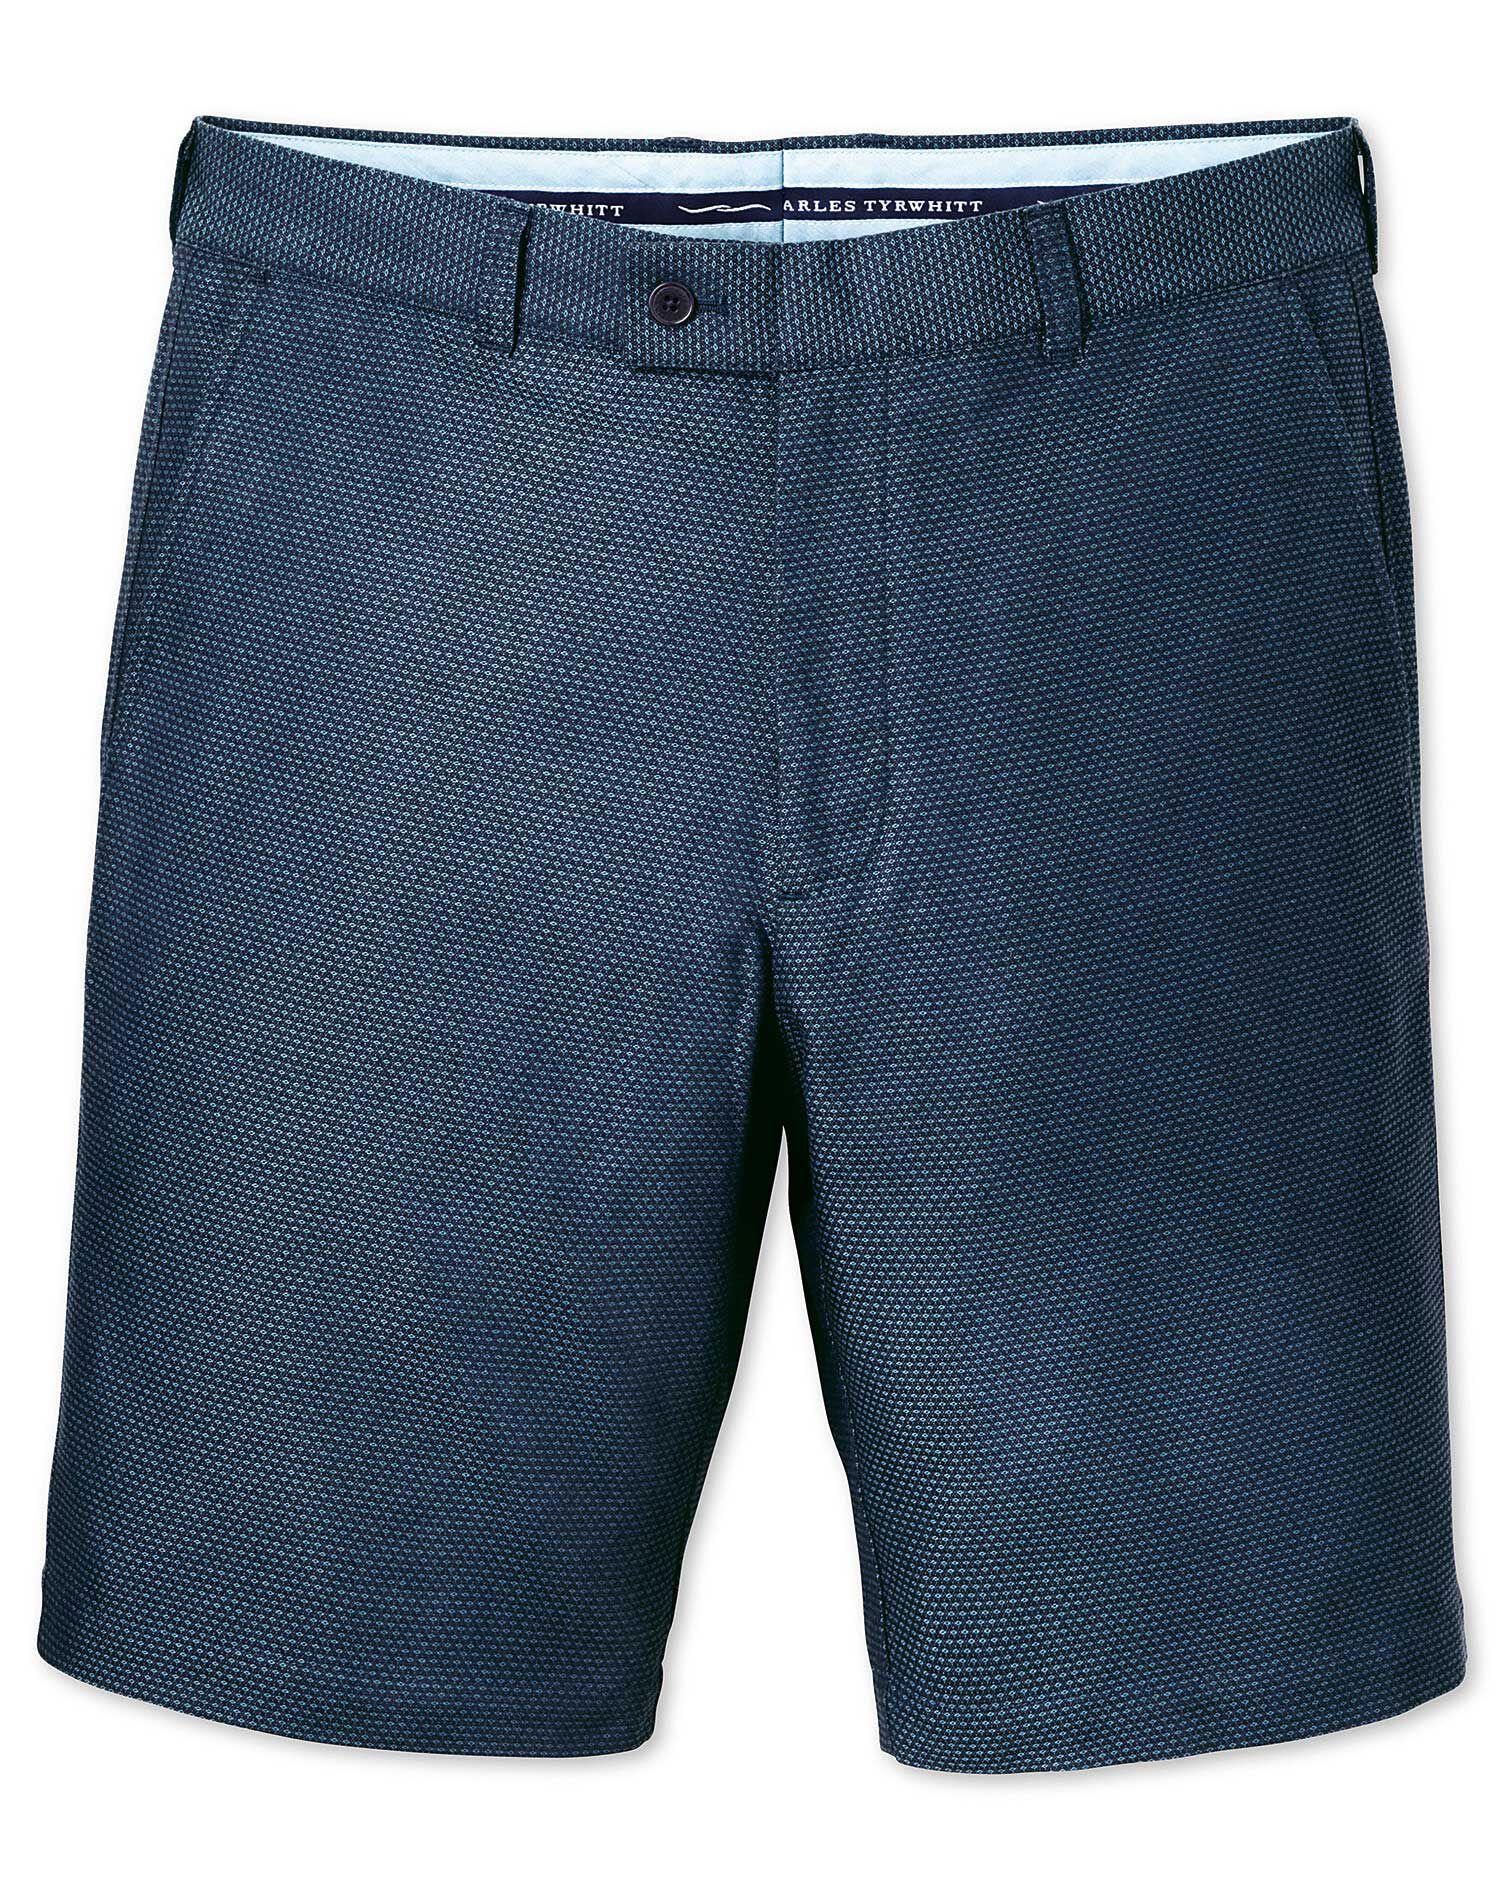 Blue Slim Fit Dobby Cotton Shorts Size 42 by Charles Tyrwhitt